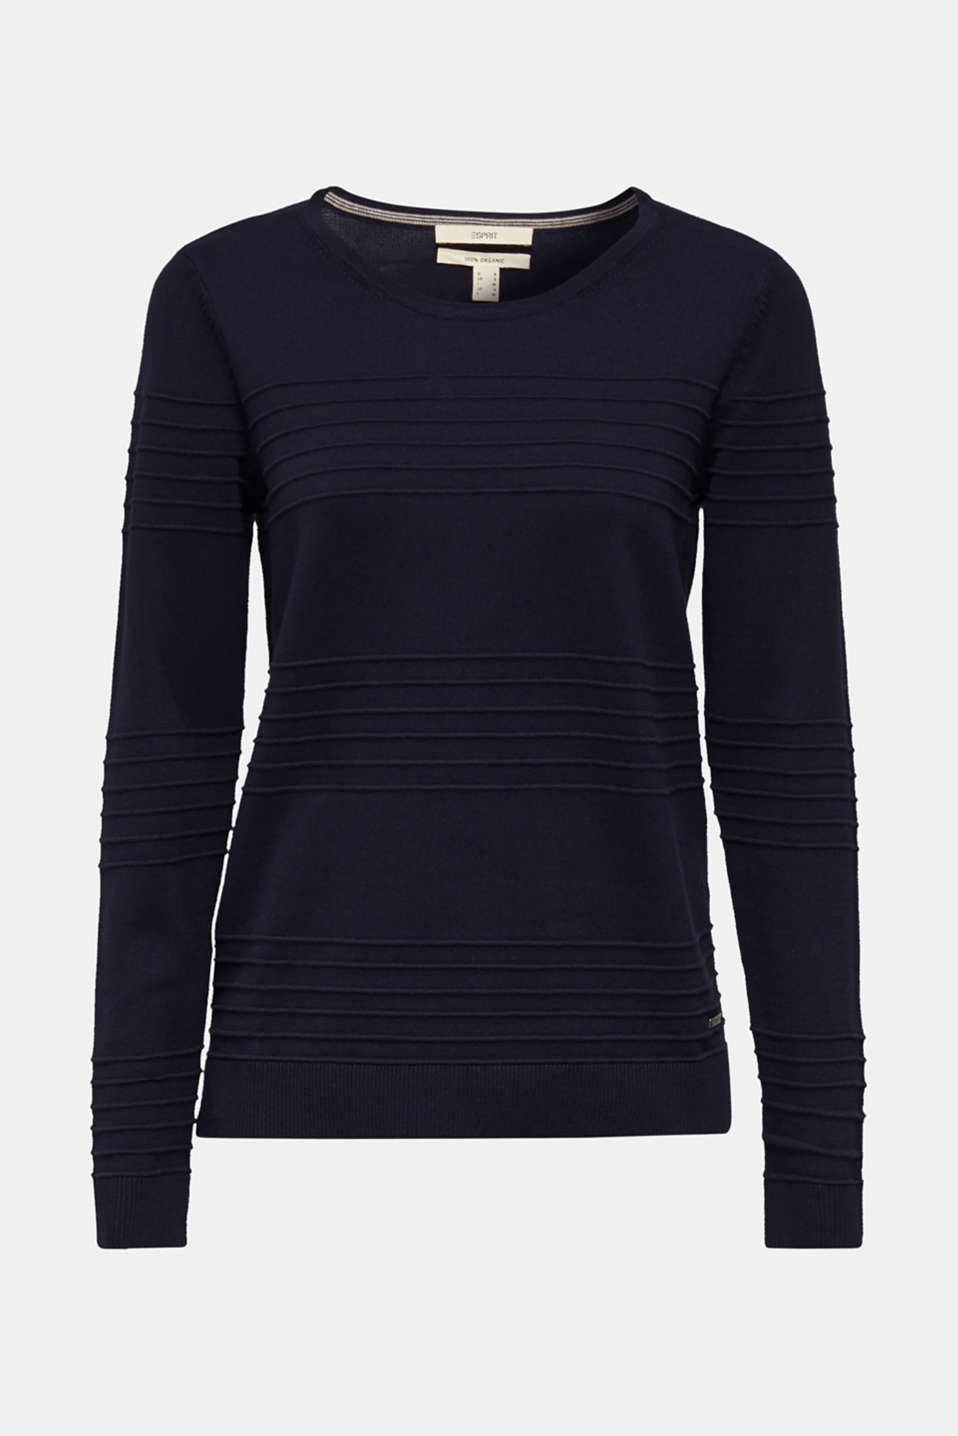 Ribbed-Jumper made of 100% cotton, NAVY, detail image number 6